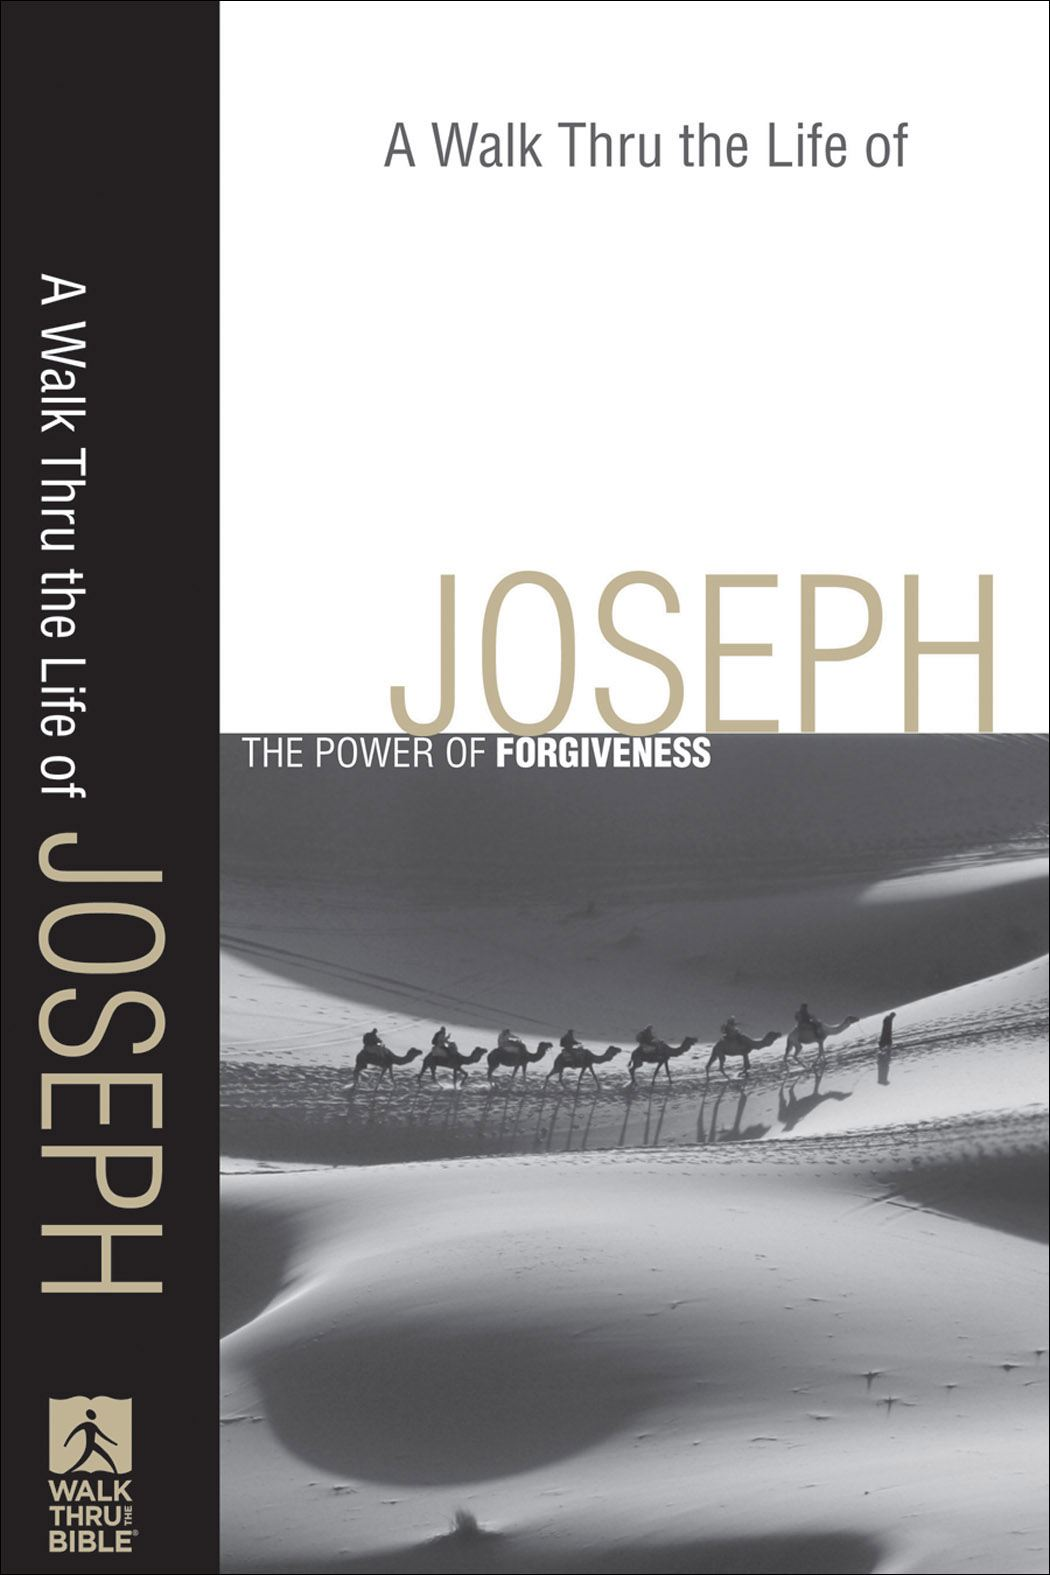 Walk Thru the Life of Joseph, A (Walk Thru the Bible Discussion Guides)